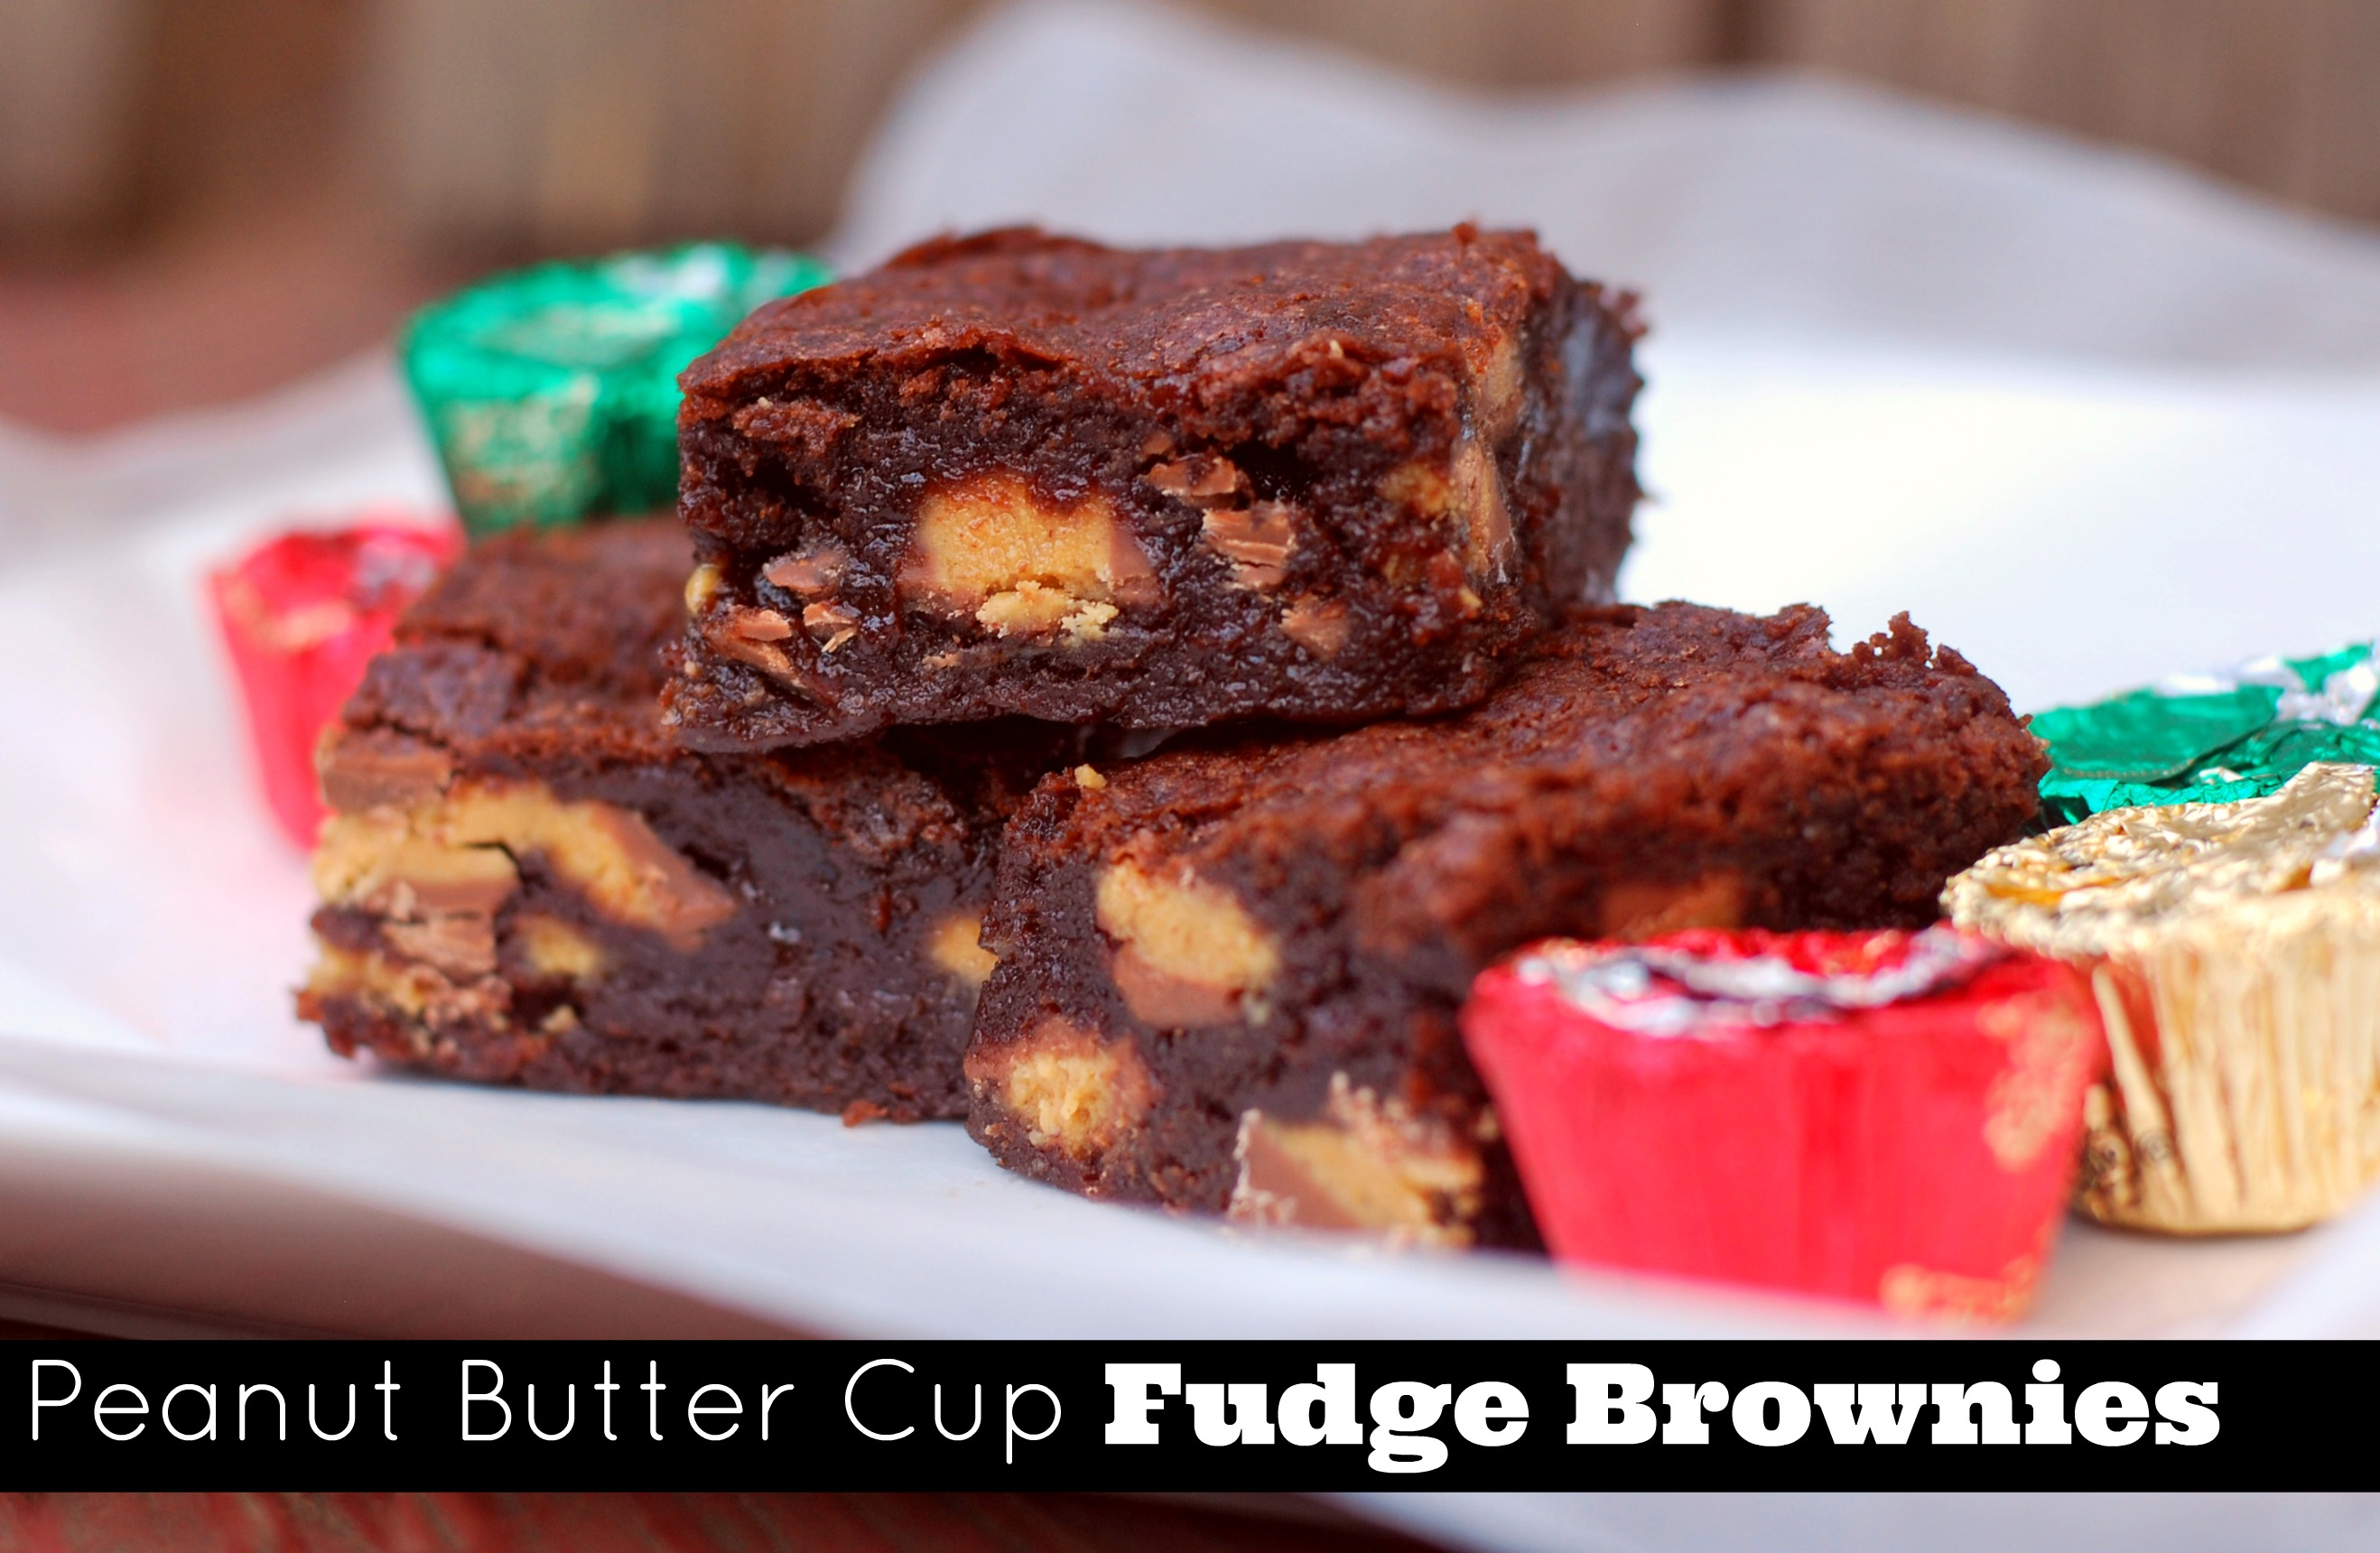 Peanut Butter Cup Fudge Brownies